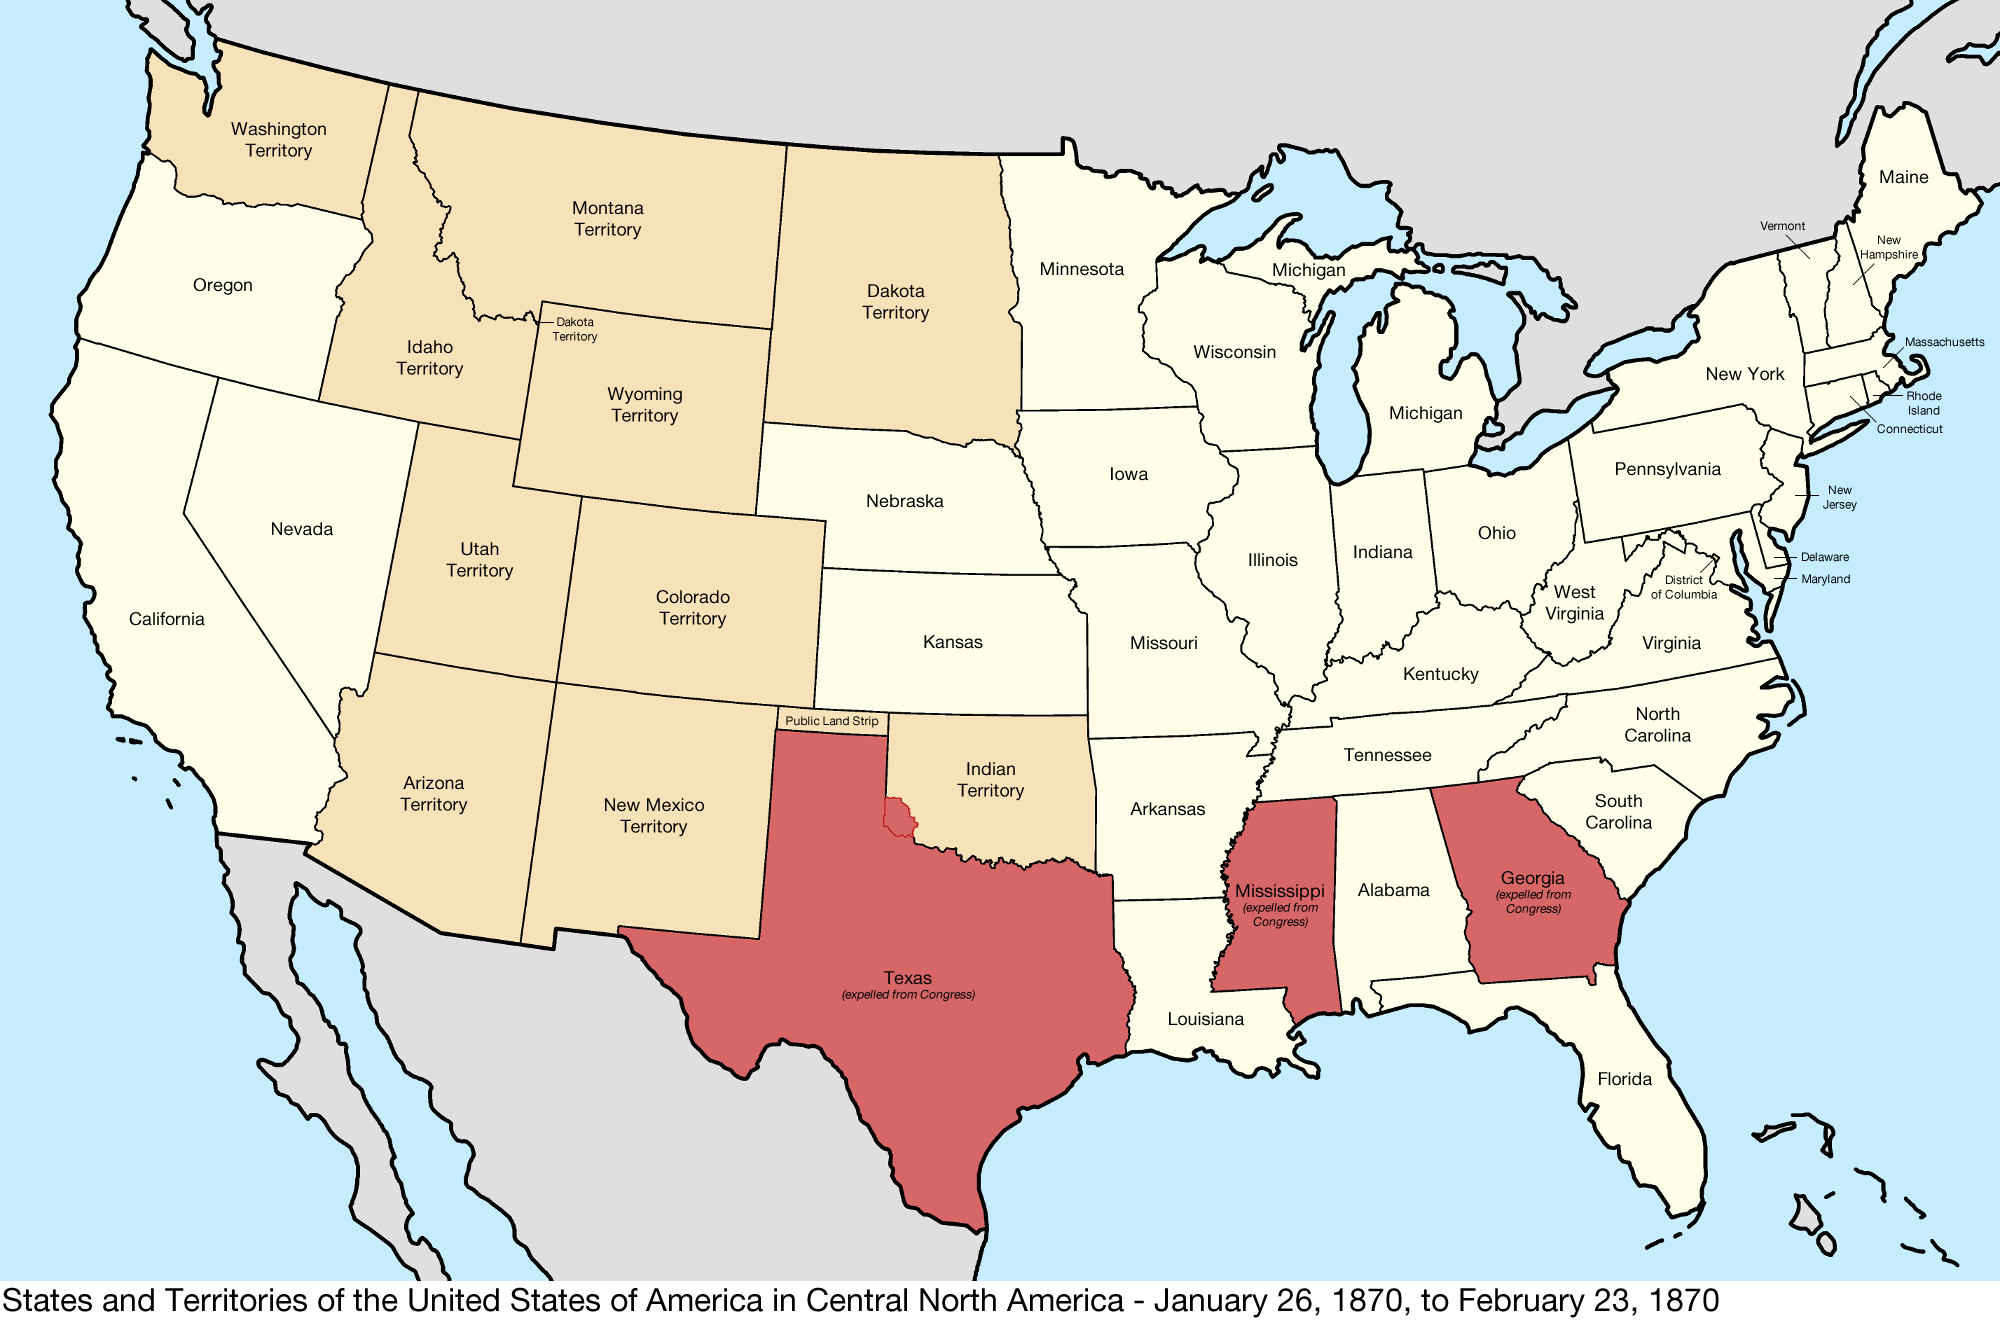 Map Of Us 1870 File:United States Central map 1870 01 26 to 1870 02 23.png